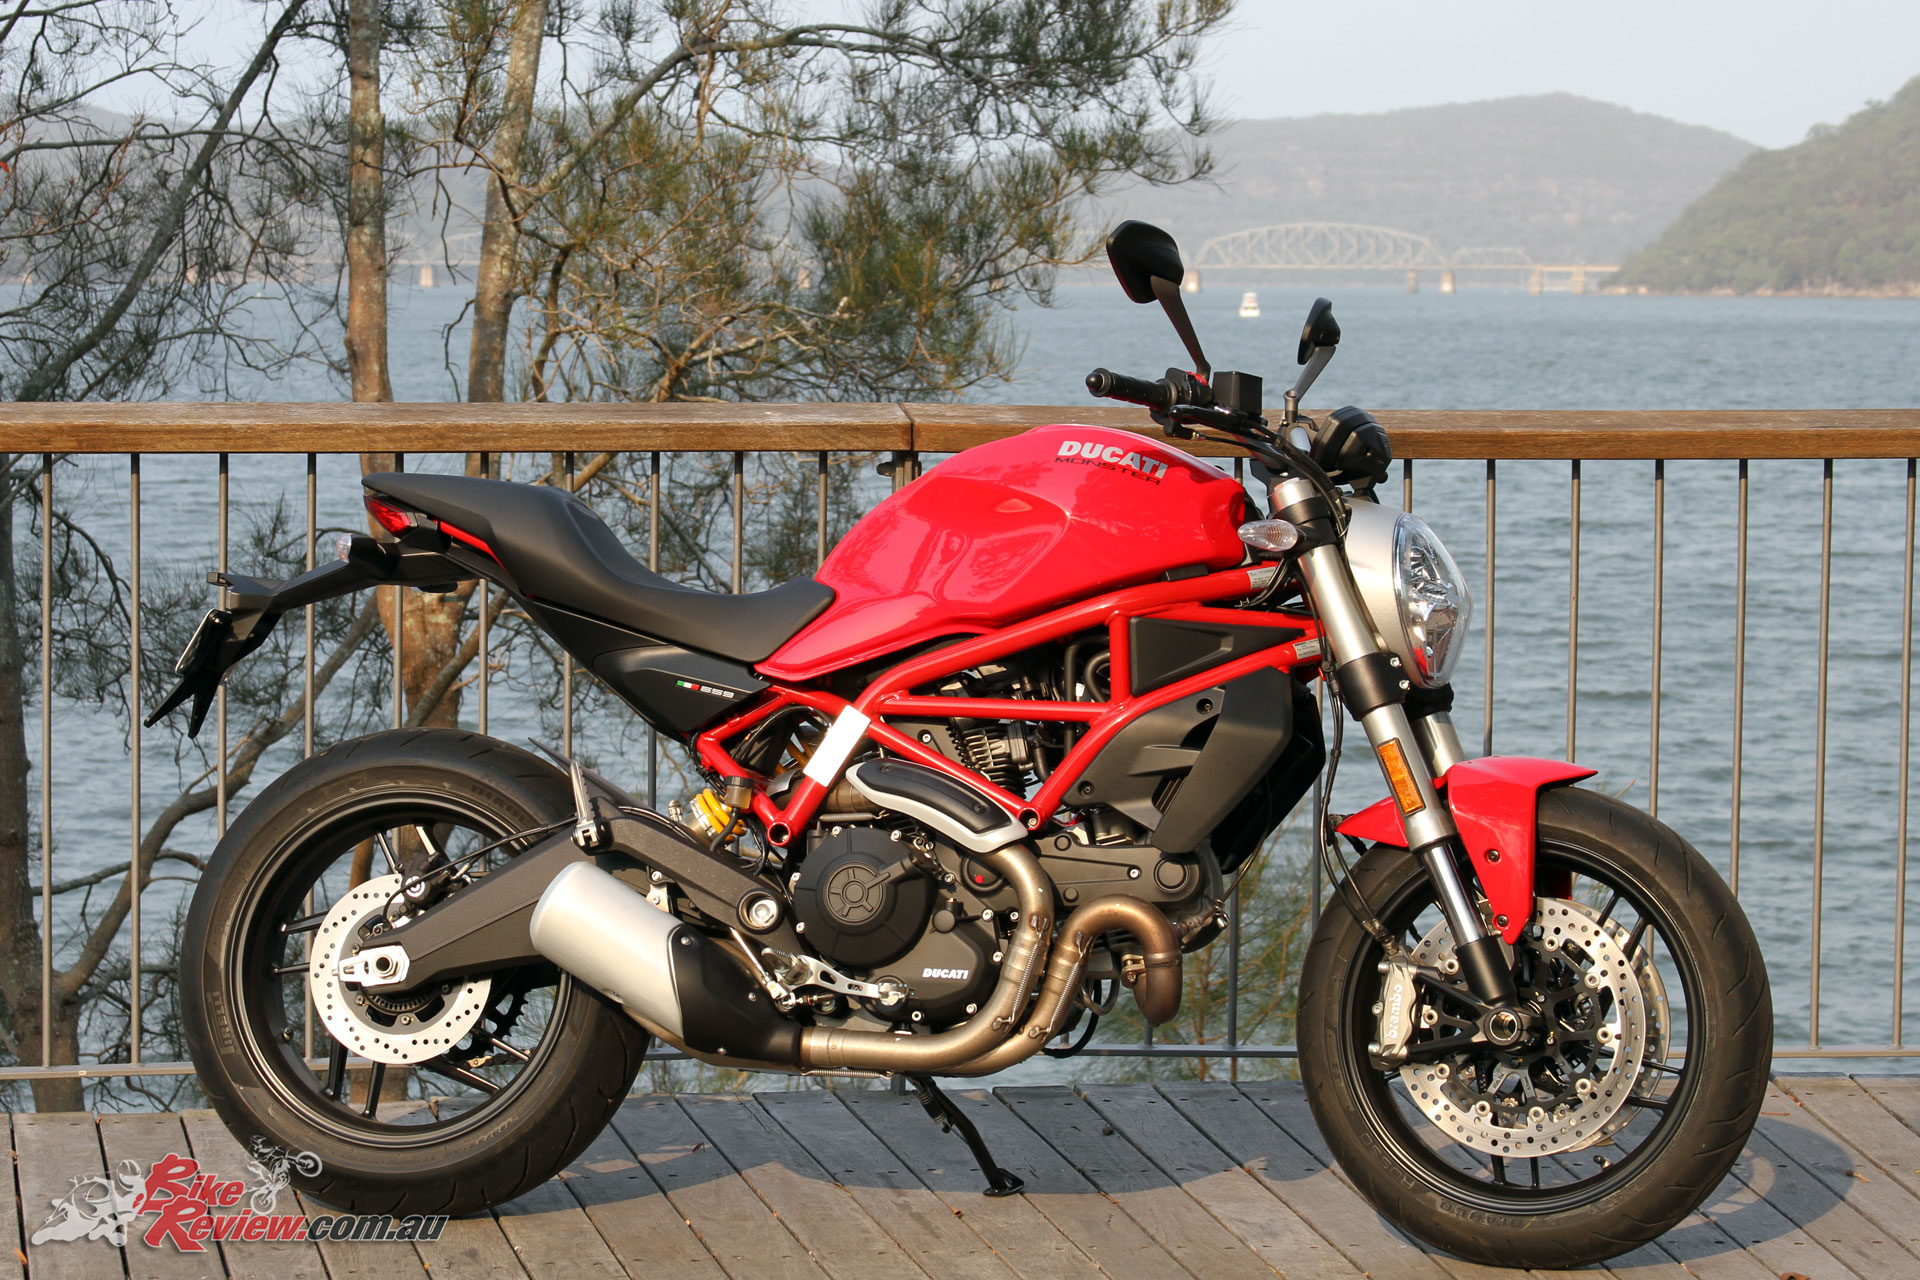 The Ducati 659 has returned for 2018 and is based on the 797 with a shorter